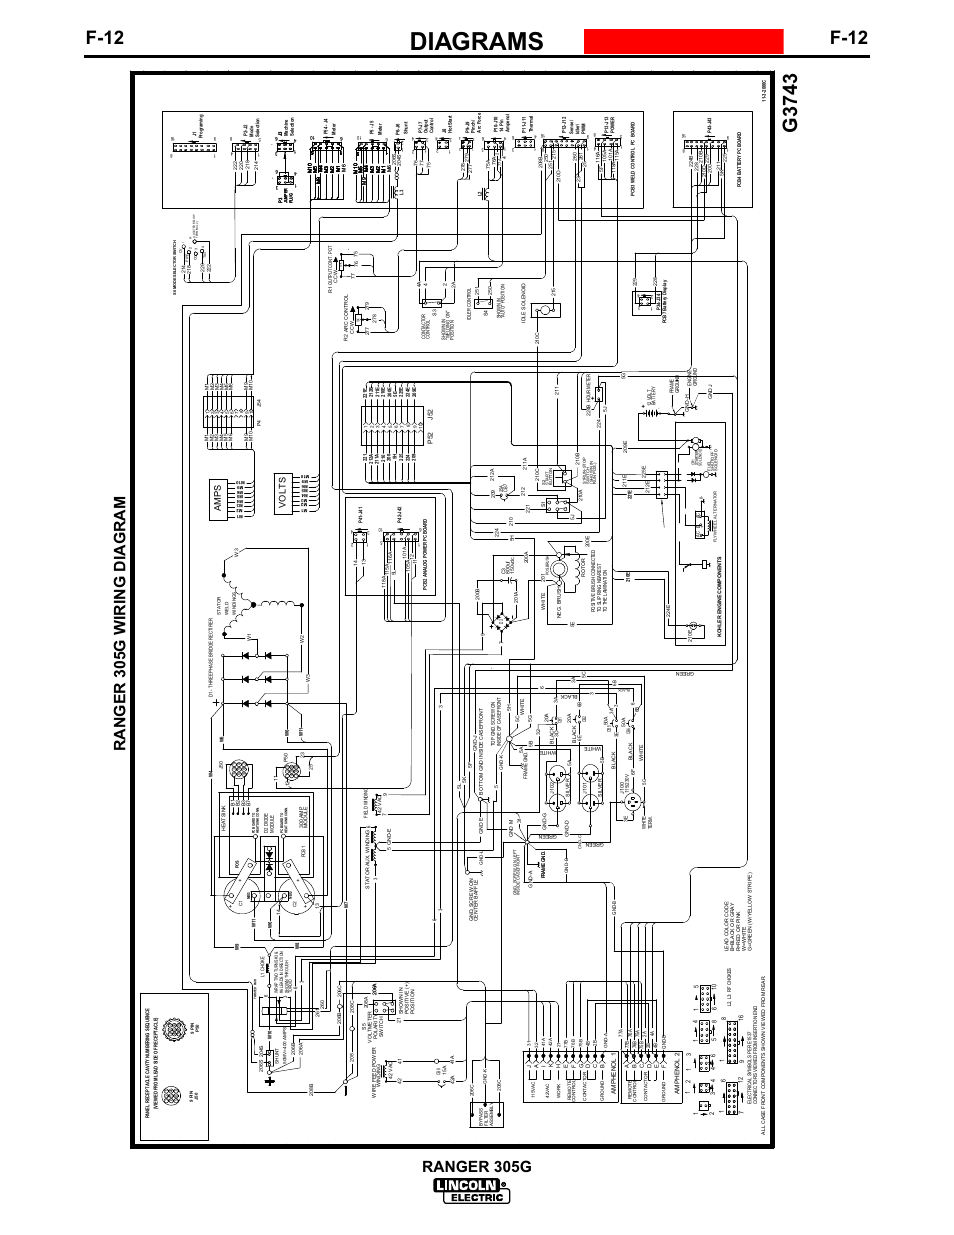 lincoln 305g wiring diagram